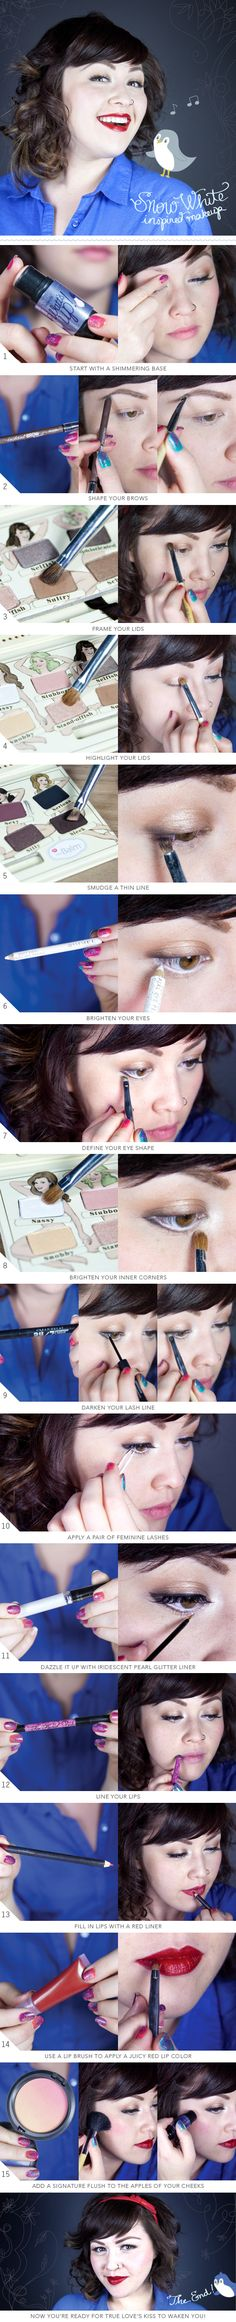 How-To: Snow White-Inspired Makeup going as snow white so this is great!